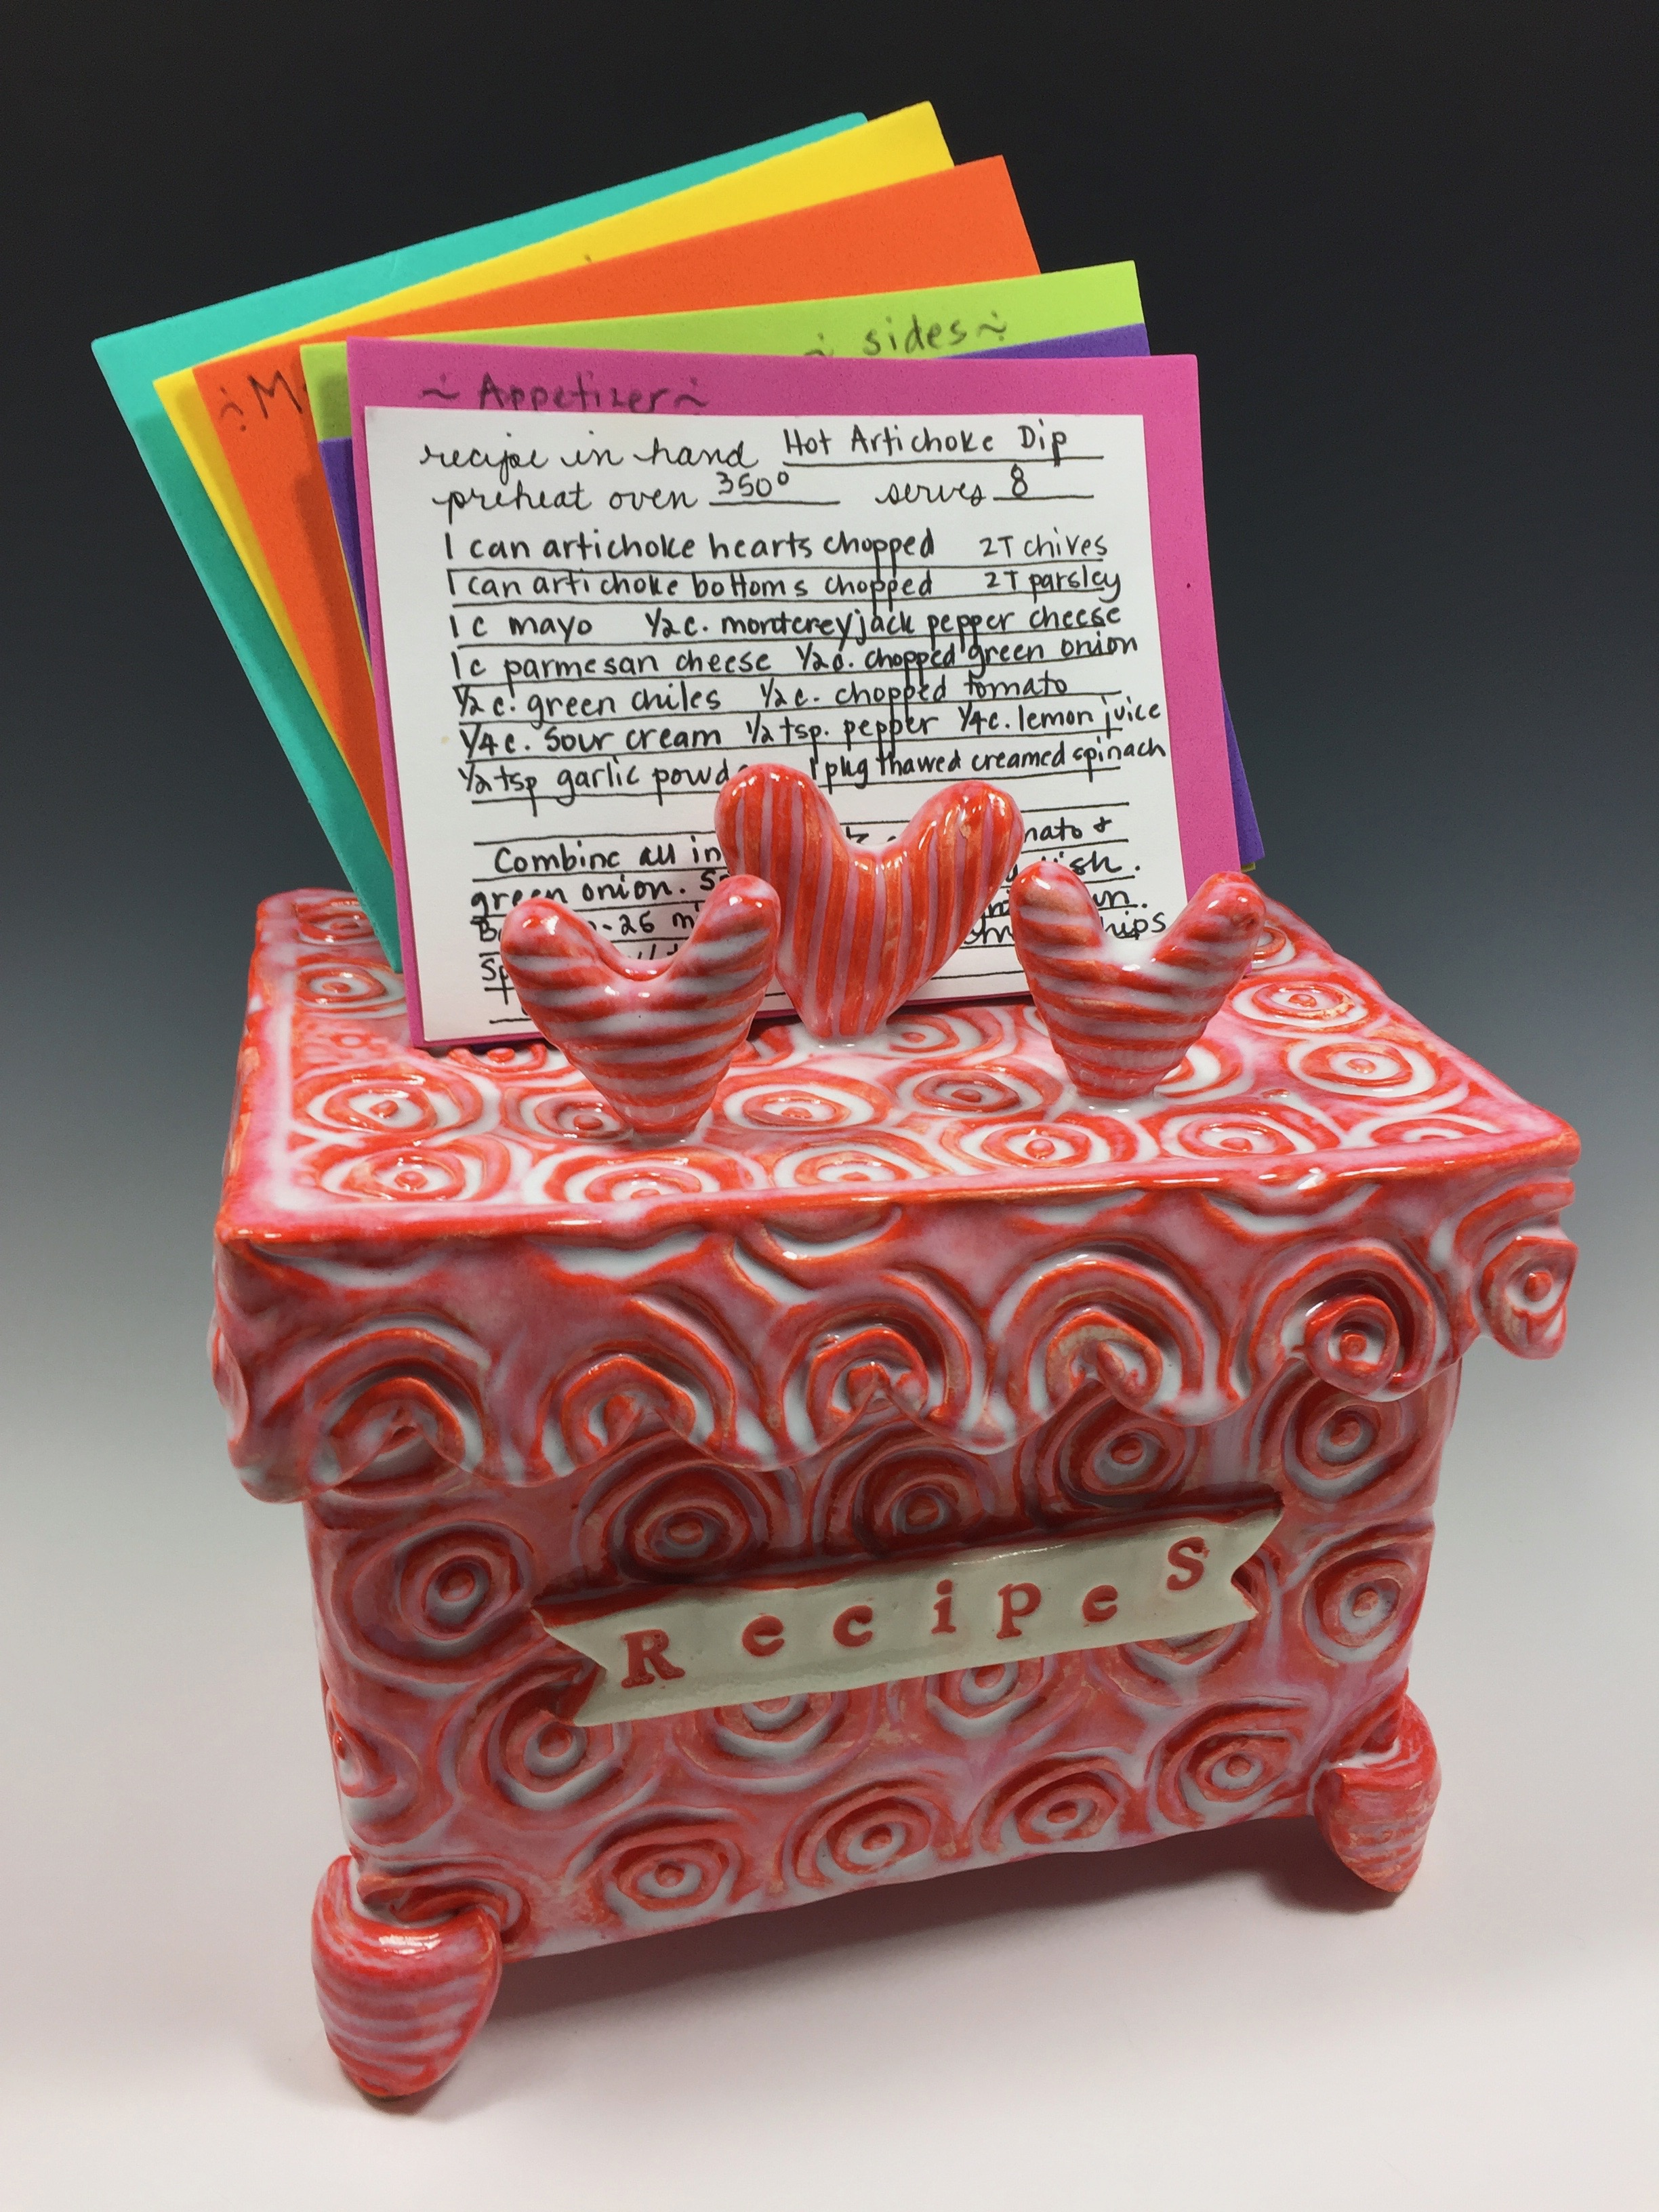 I have a recipe box like this 'in the works' that will be gifted at a wedding shower. Each participant will provide one of their favorite recipes with this present. I bet each time one of those recipes is prepared, it will generate a flood of memories!